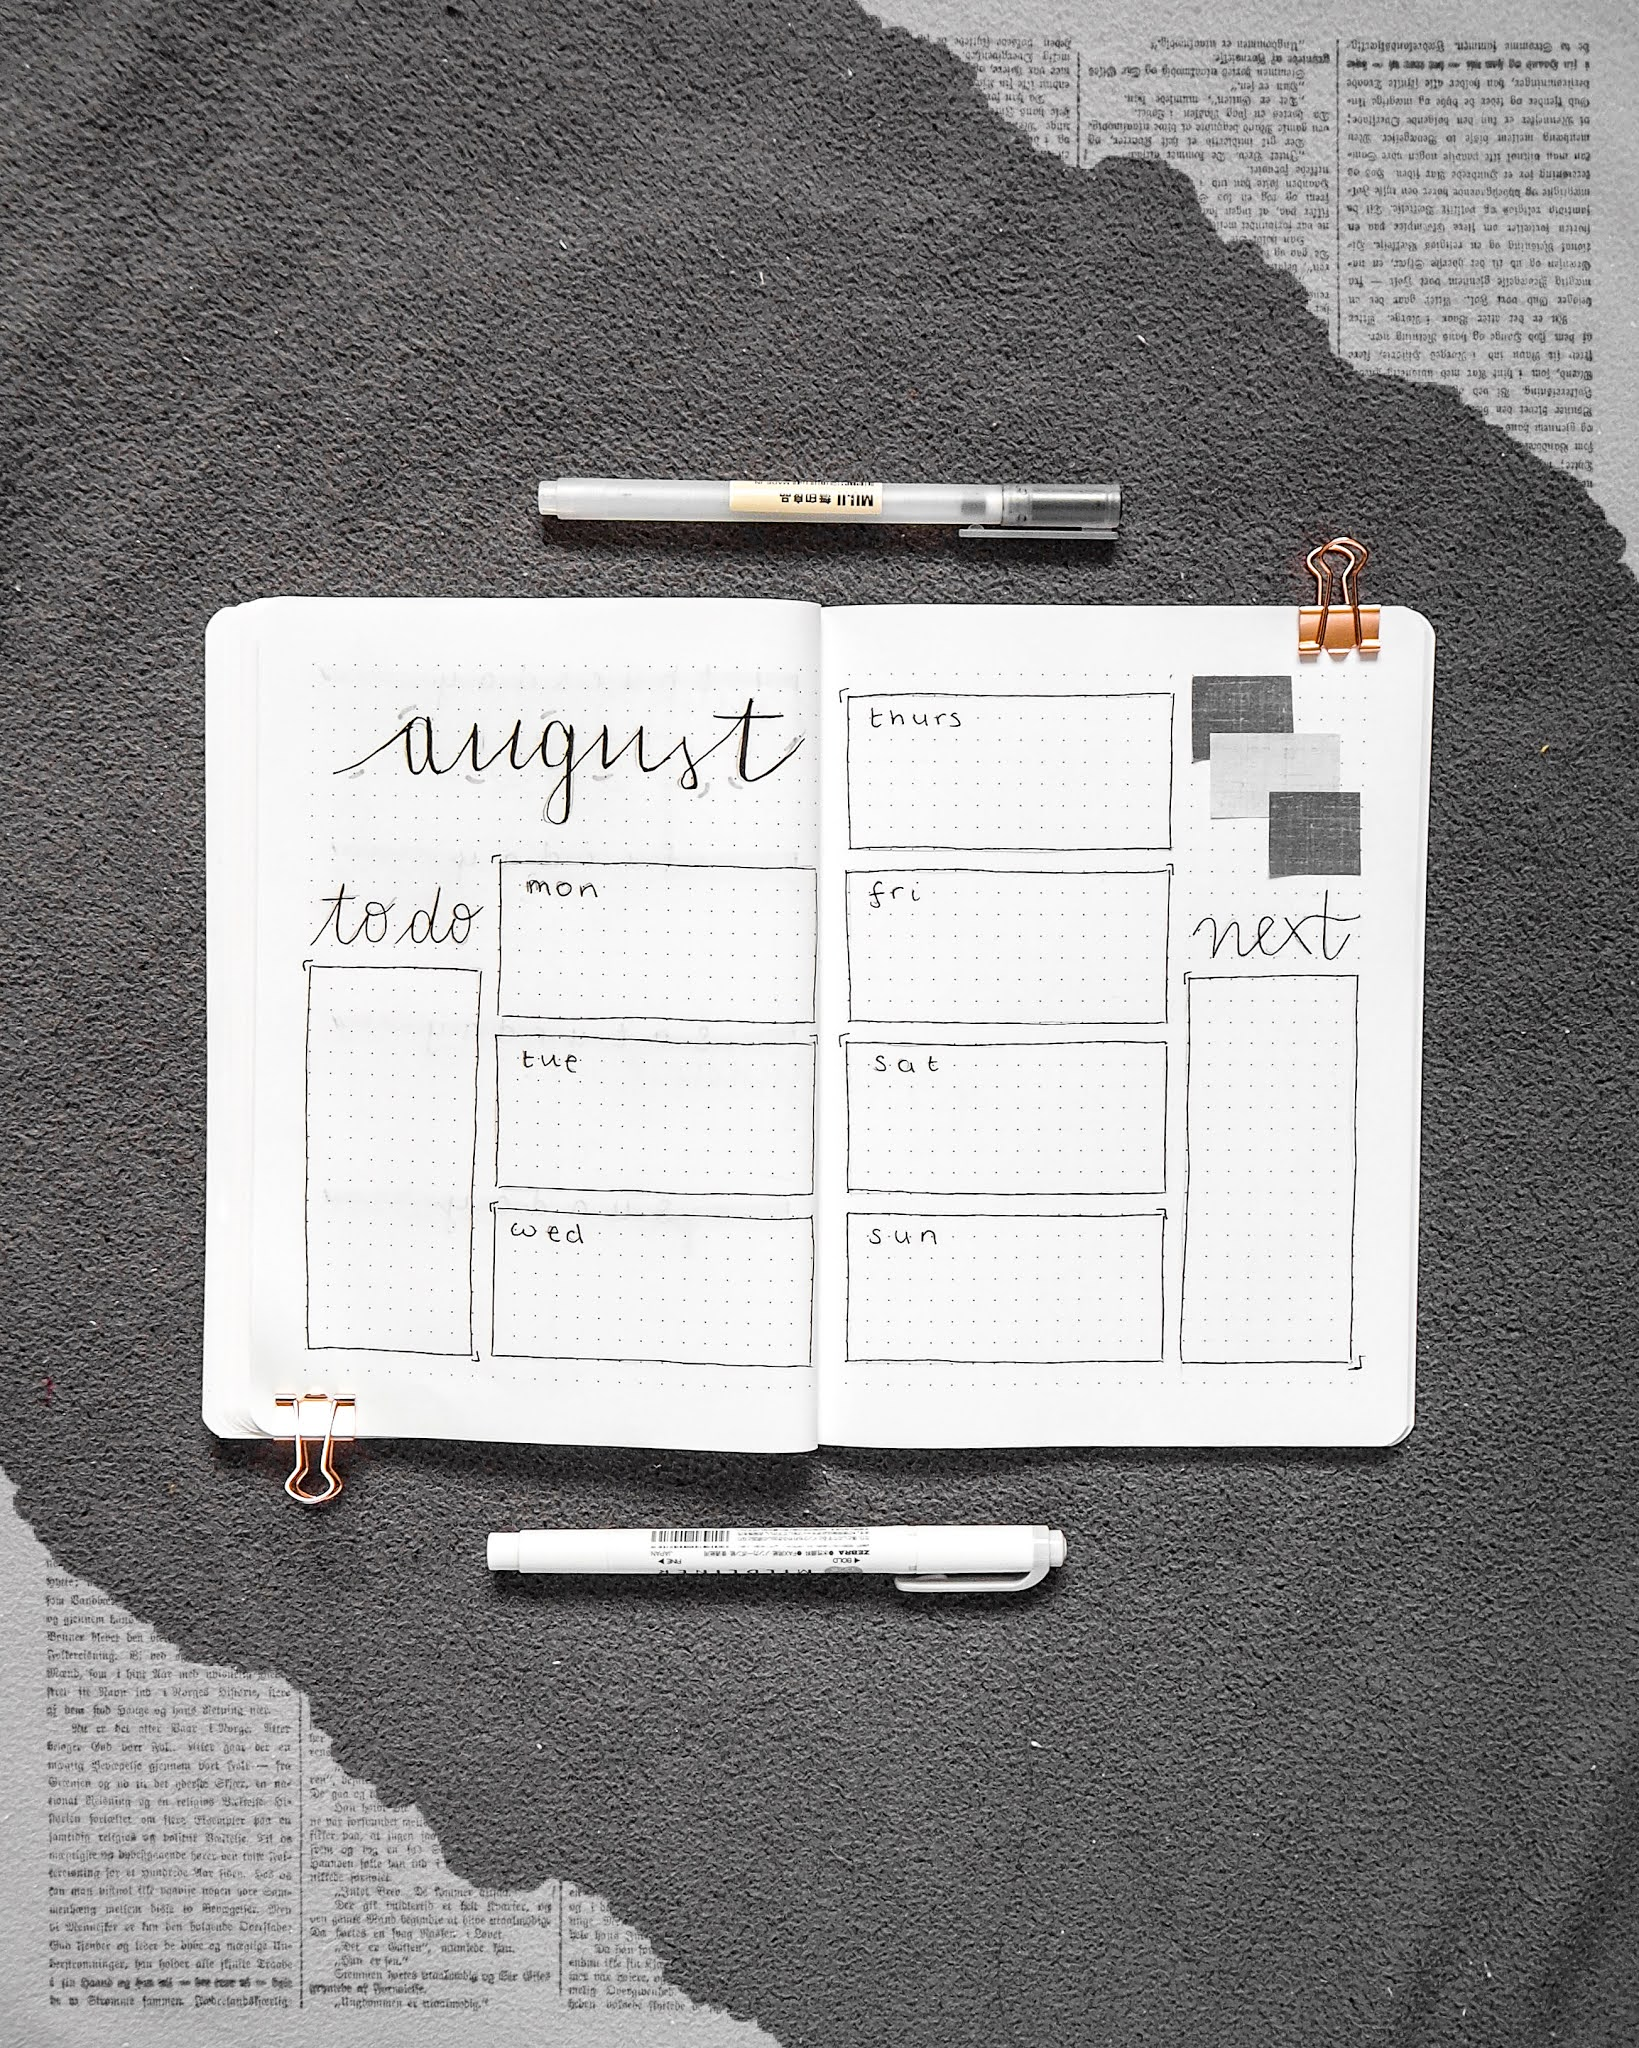 the month covers the top of the first page of the double spread. along the far left is a column for a to do list and on the far right is a column for things to do the next week. The middle of the double spread is spilt into two column and the 3 on the first half and 4 on the second half for boxes for each day